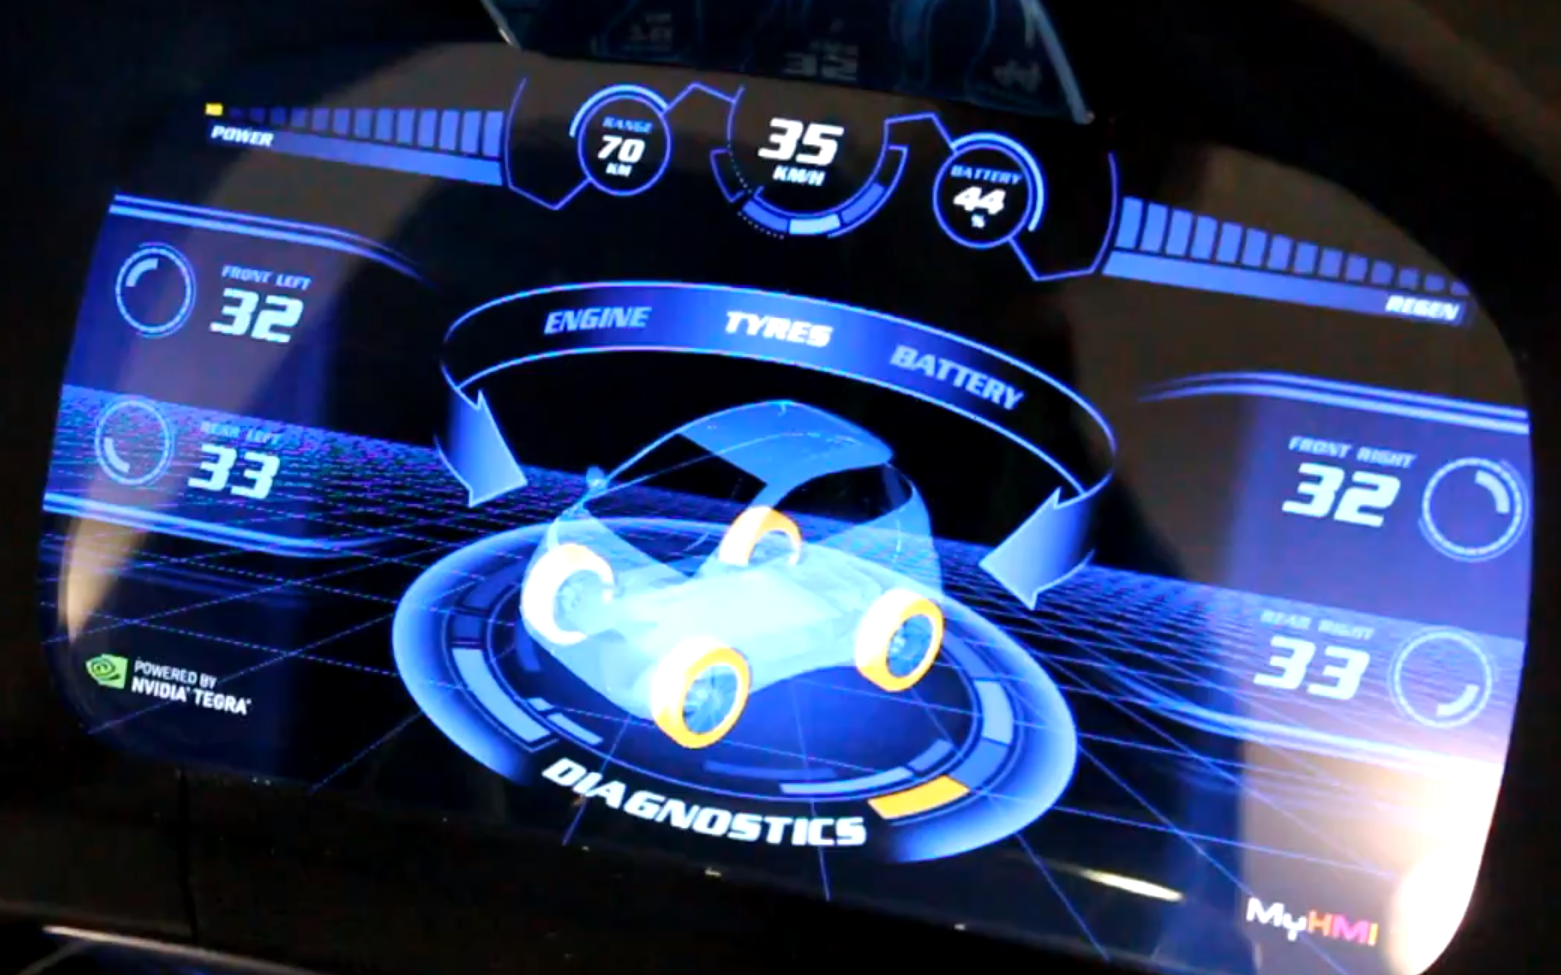 Nvidia S Tegra Team Shows Off Car Dashboards Of The Future